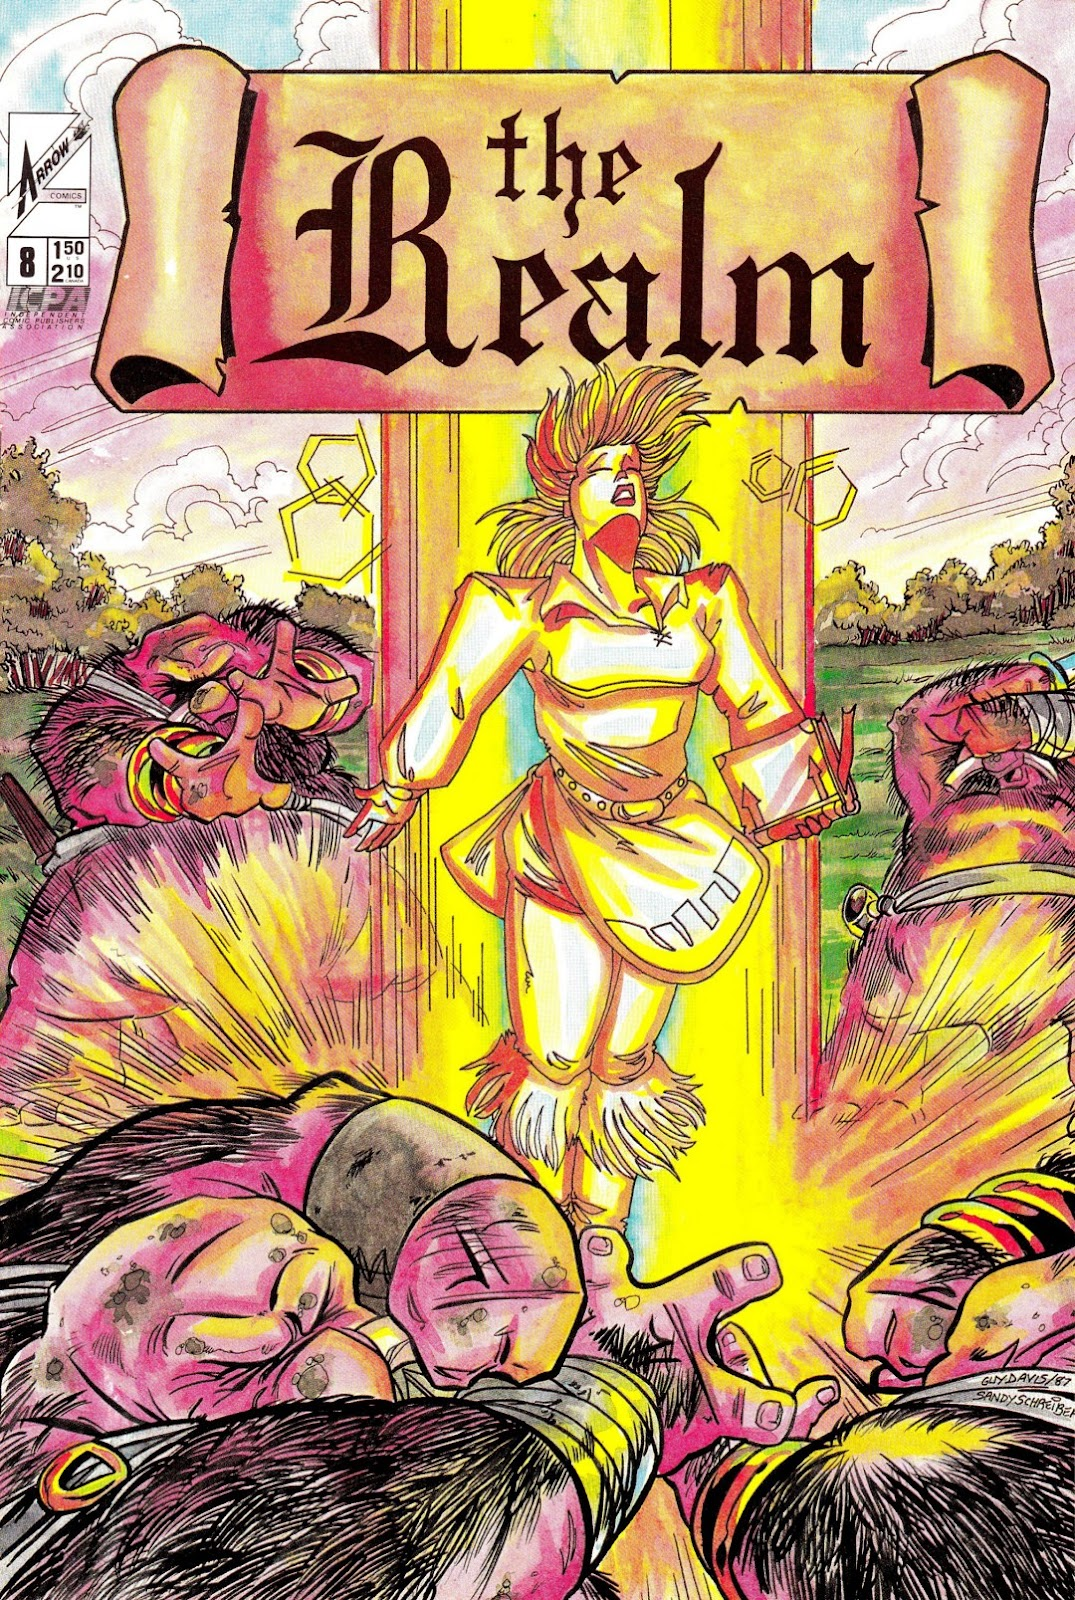 The Realm (1986) issue 8 - Page 1